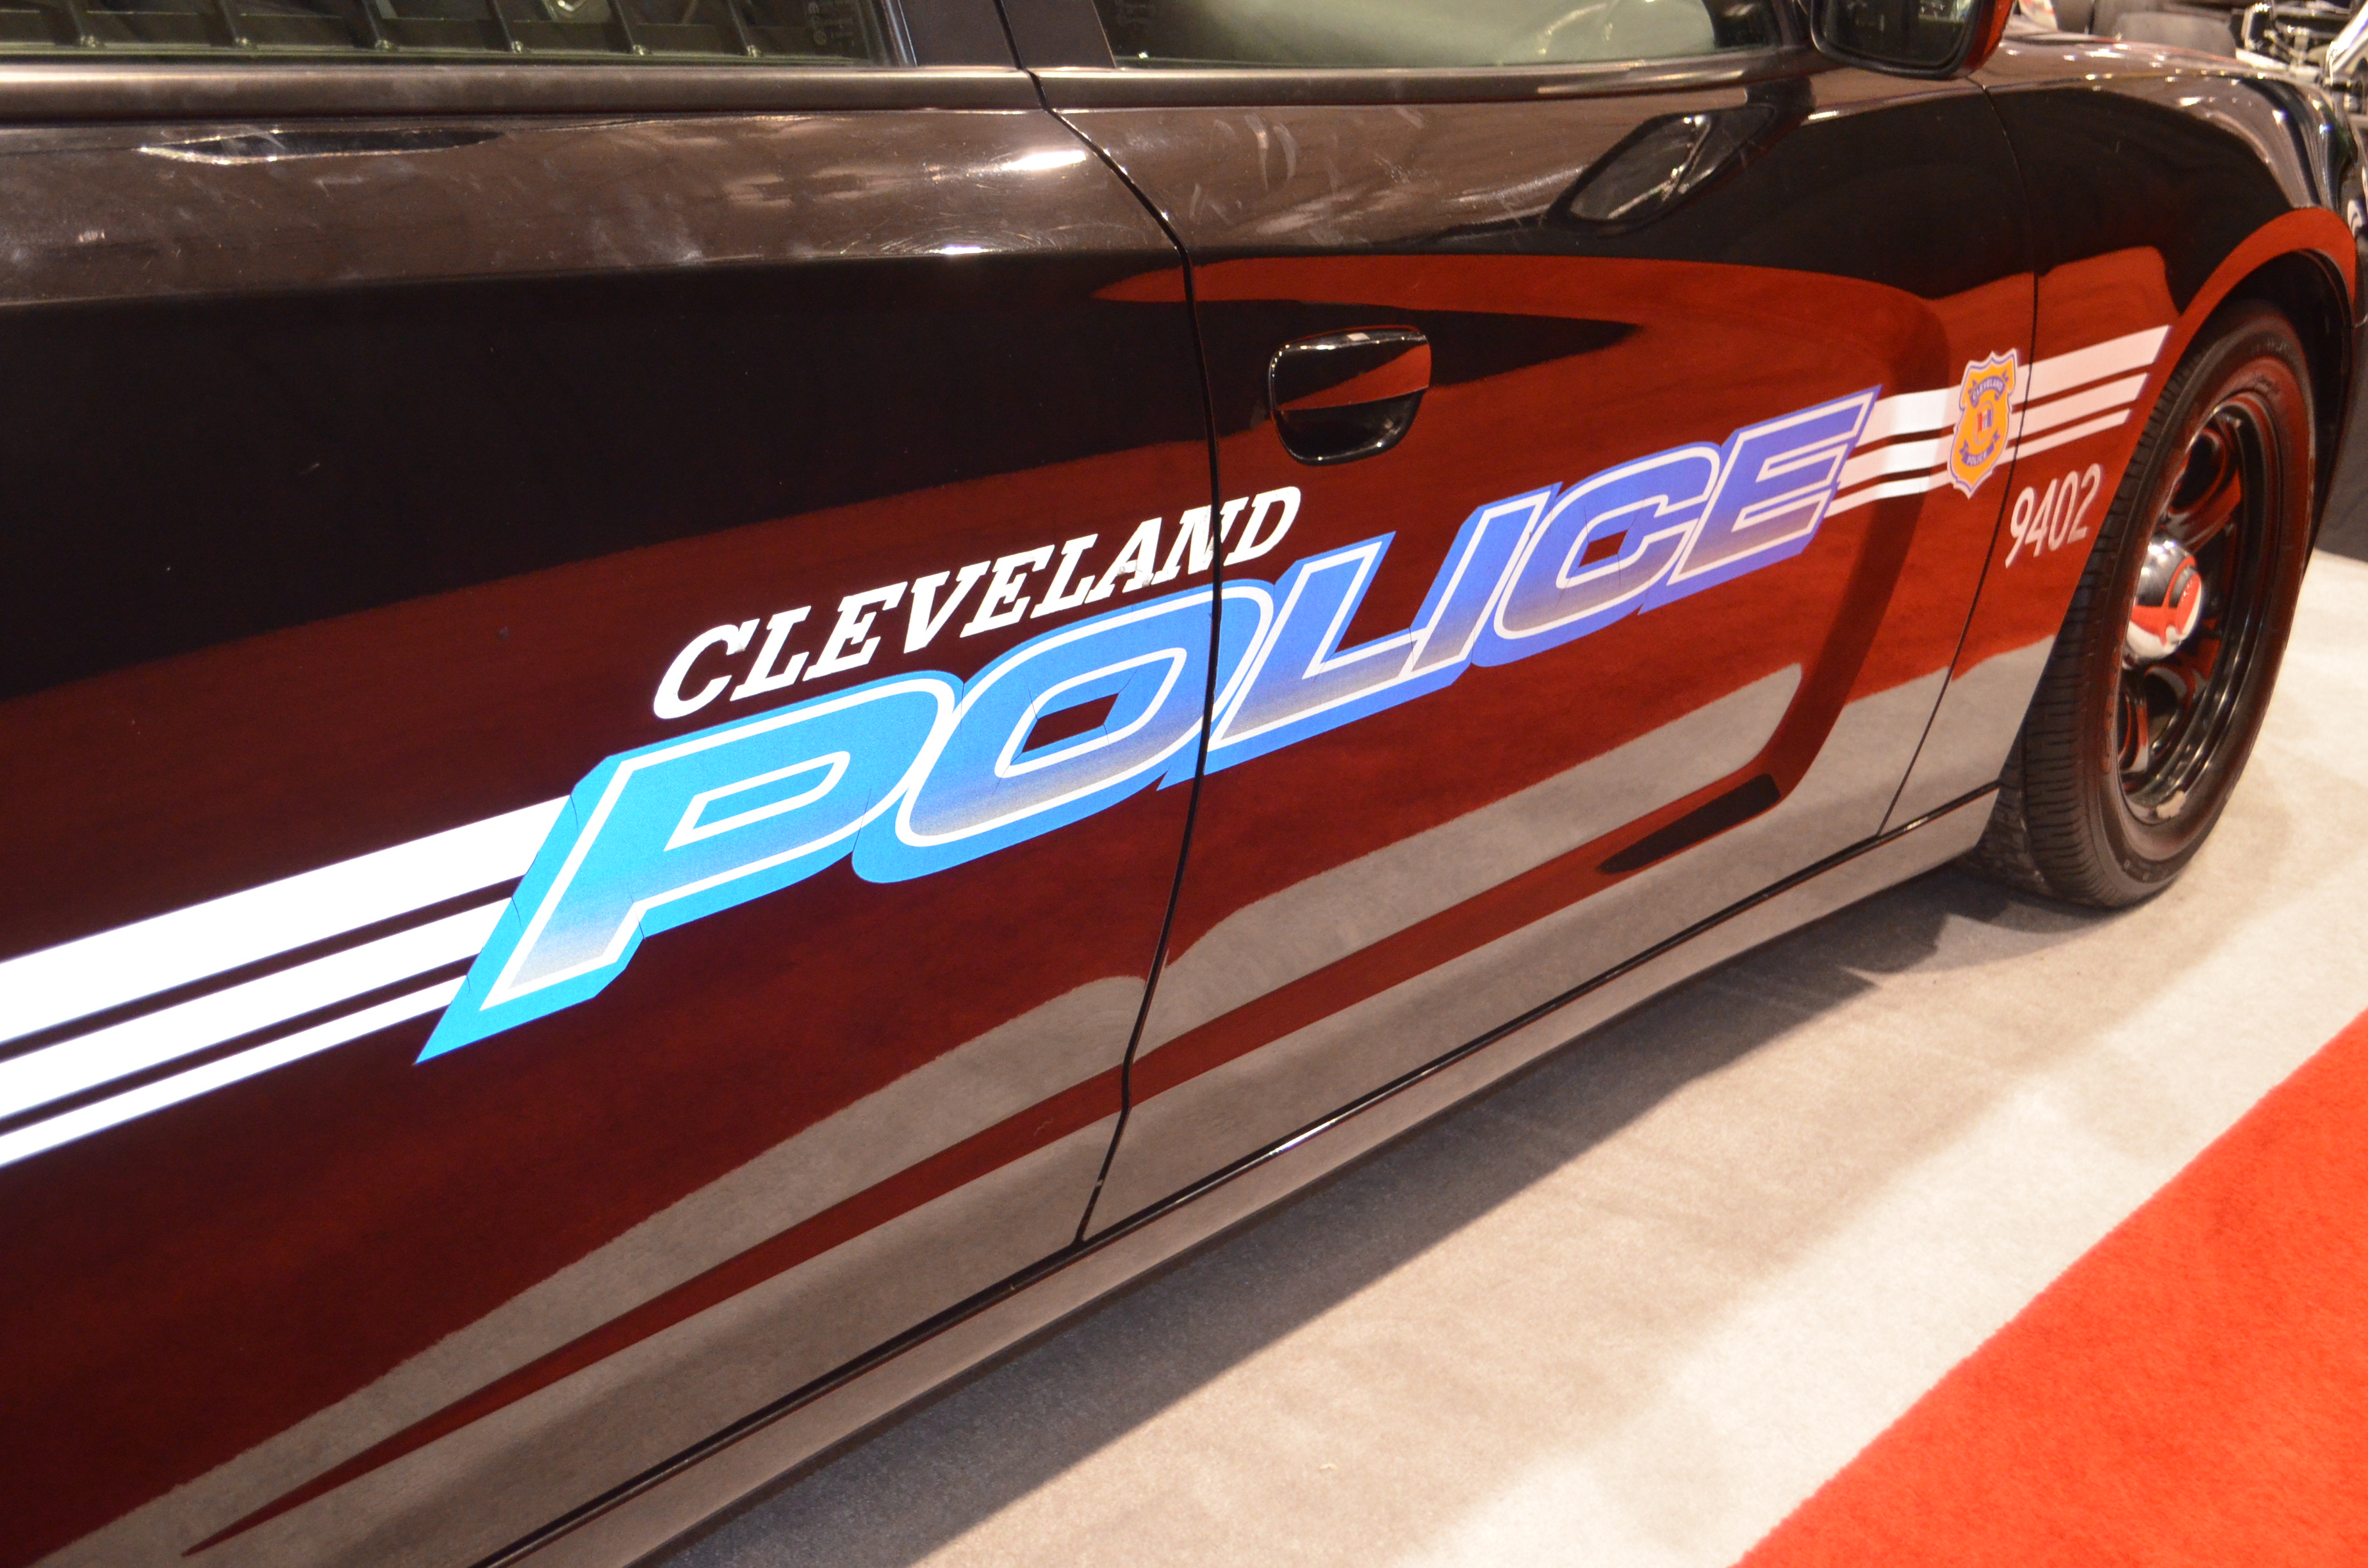 cleveland teen shot several times; police searching for 3 suspects